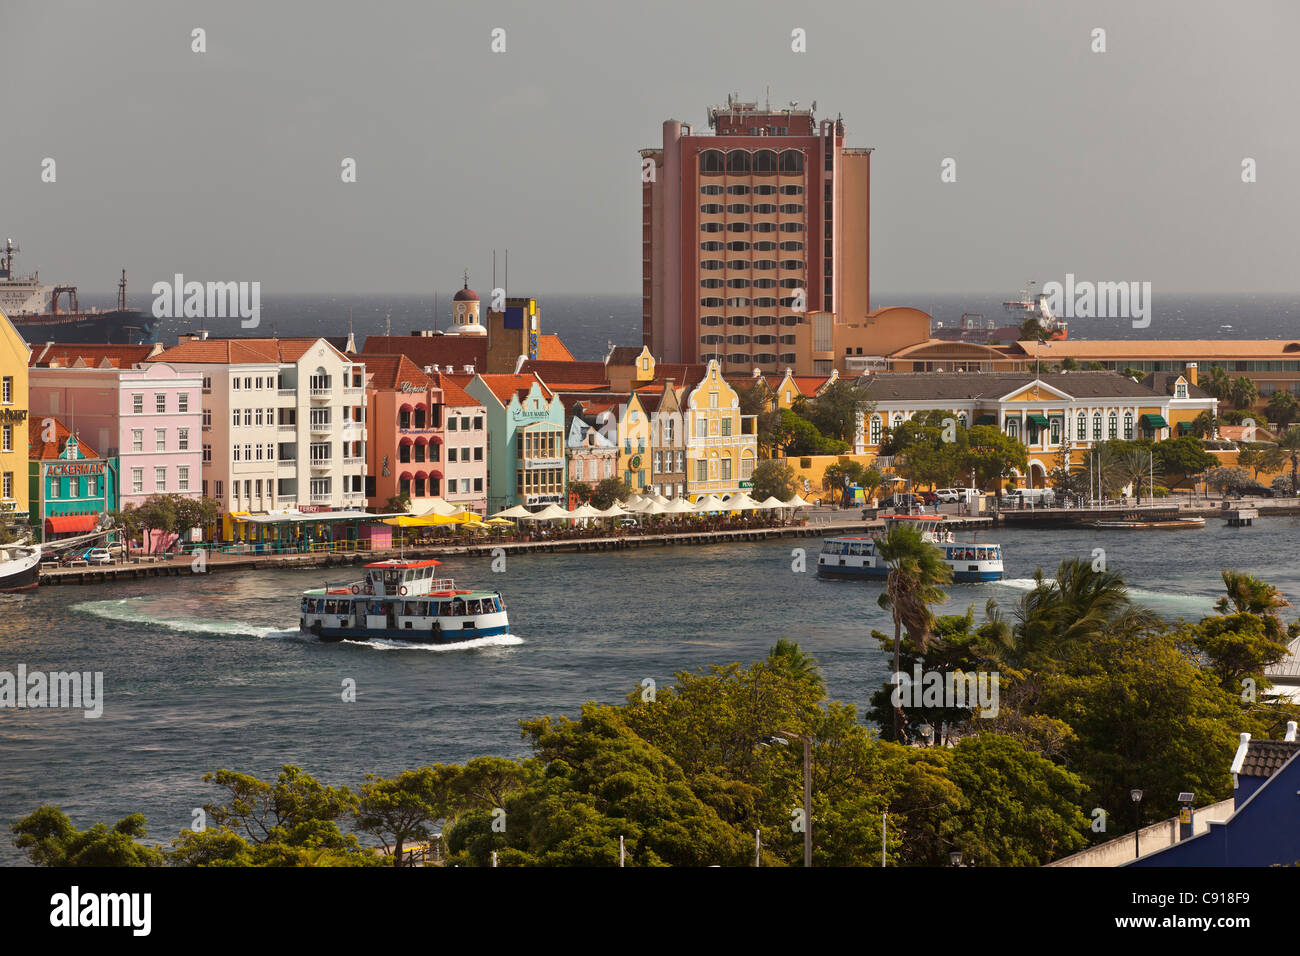 Curacao, Caribbean island, Willemstad. Historic houses on waterfront. Ferry boats crossing St Annabaai. - Stock Image